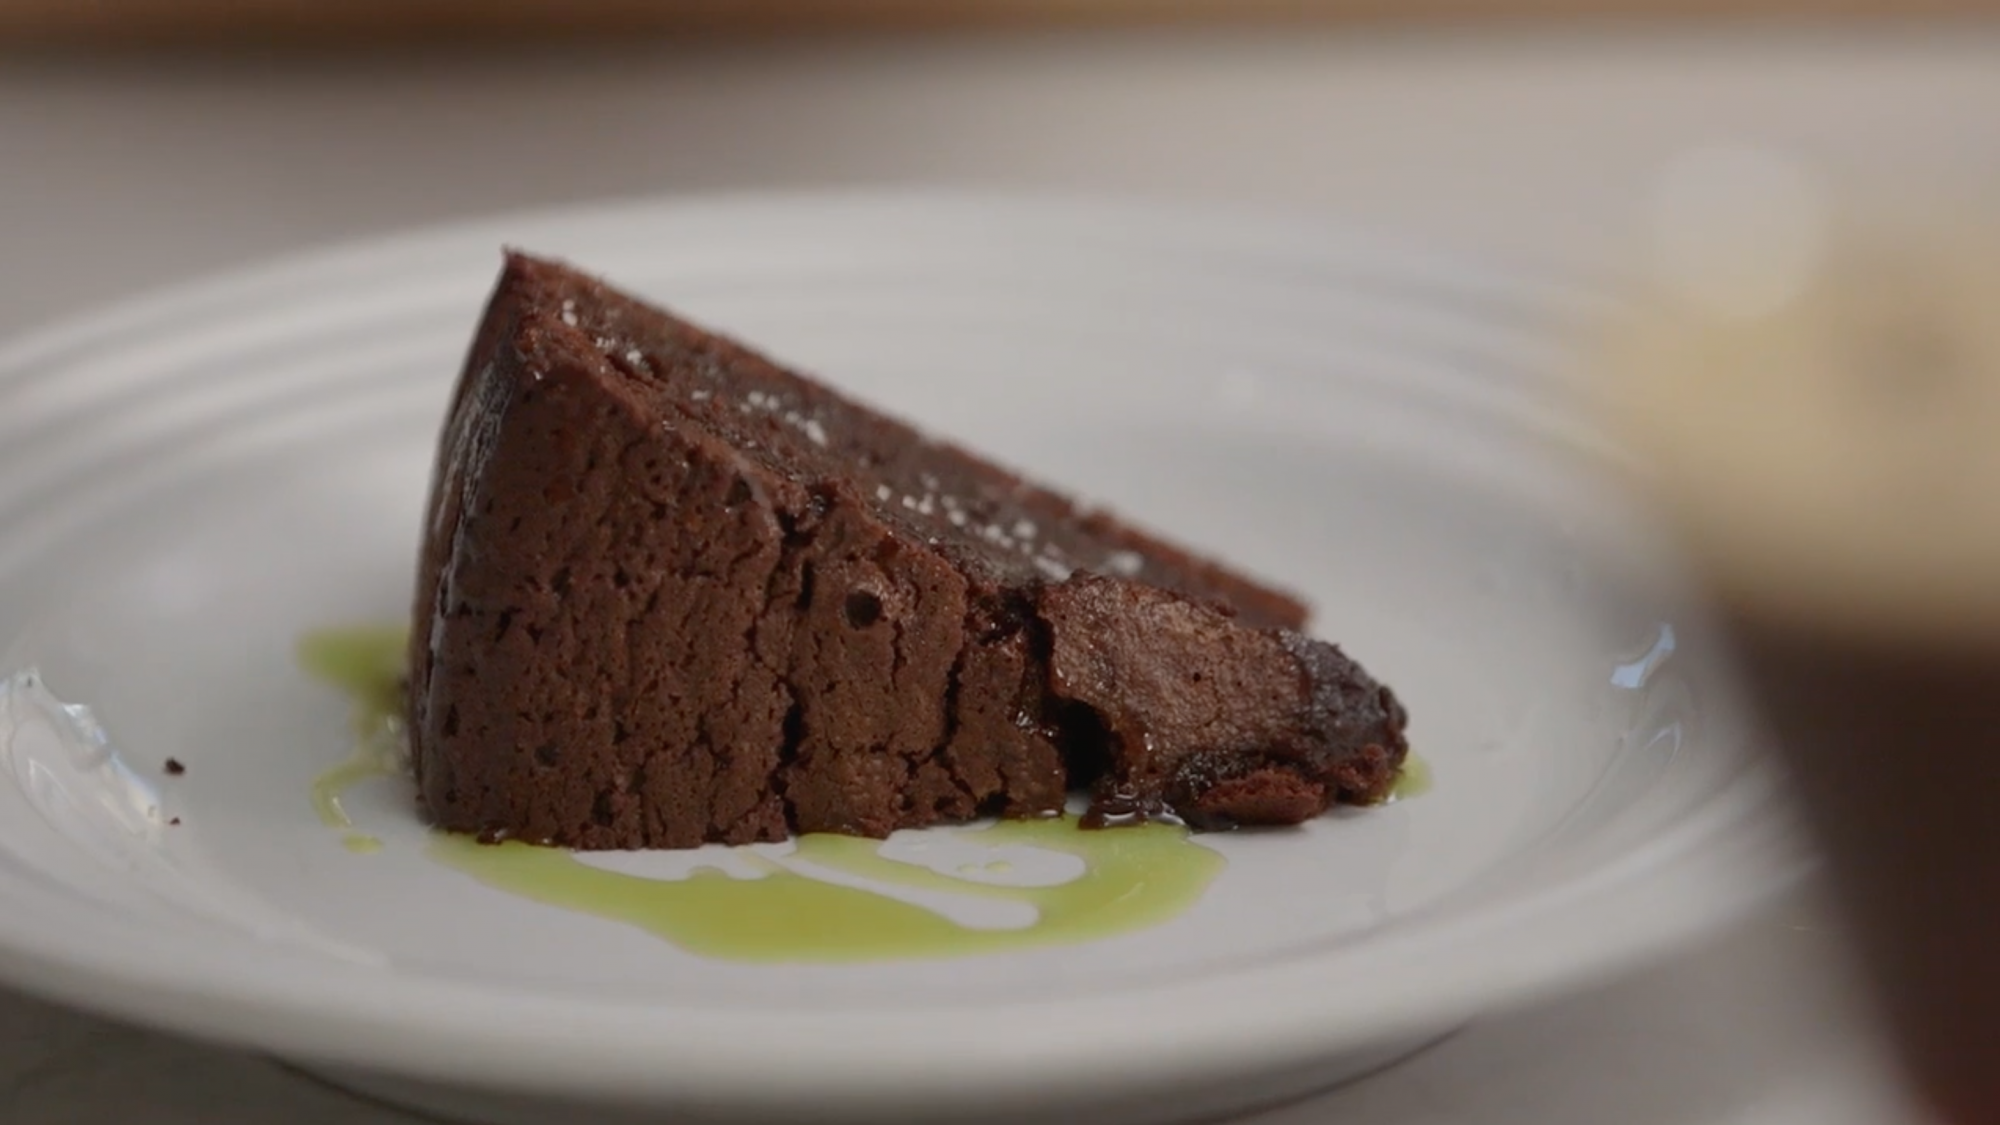 Ludo Lefebvre's Chocolate Cake and Espresso Martini Are a Dessert Dream Come True